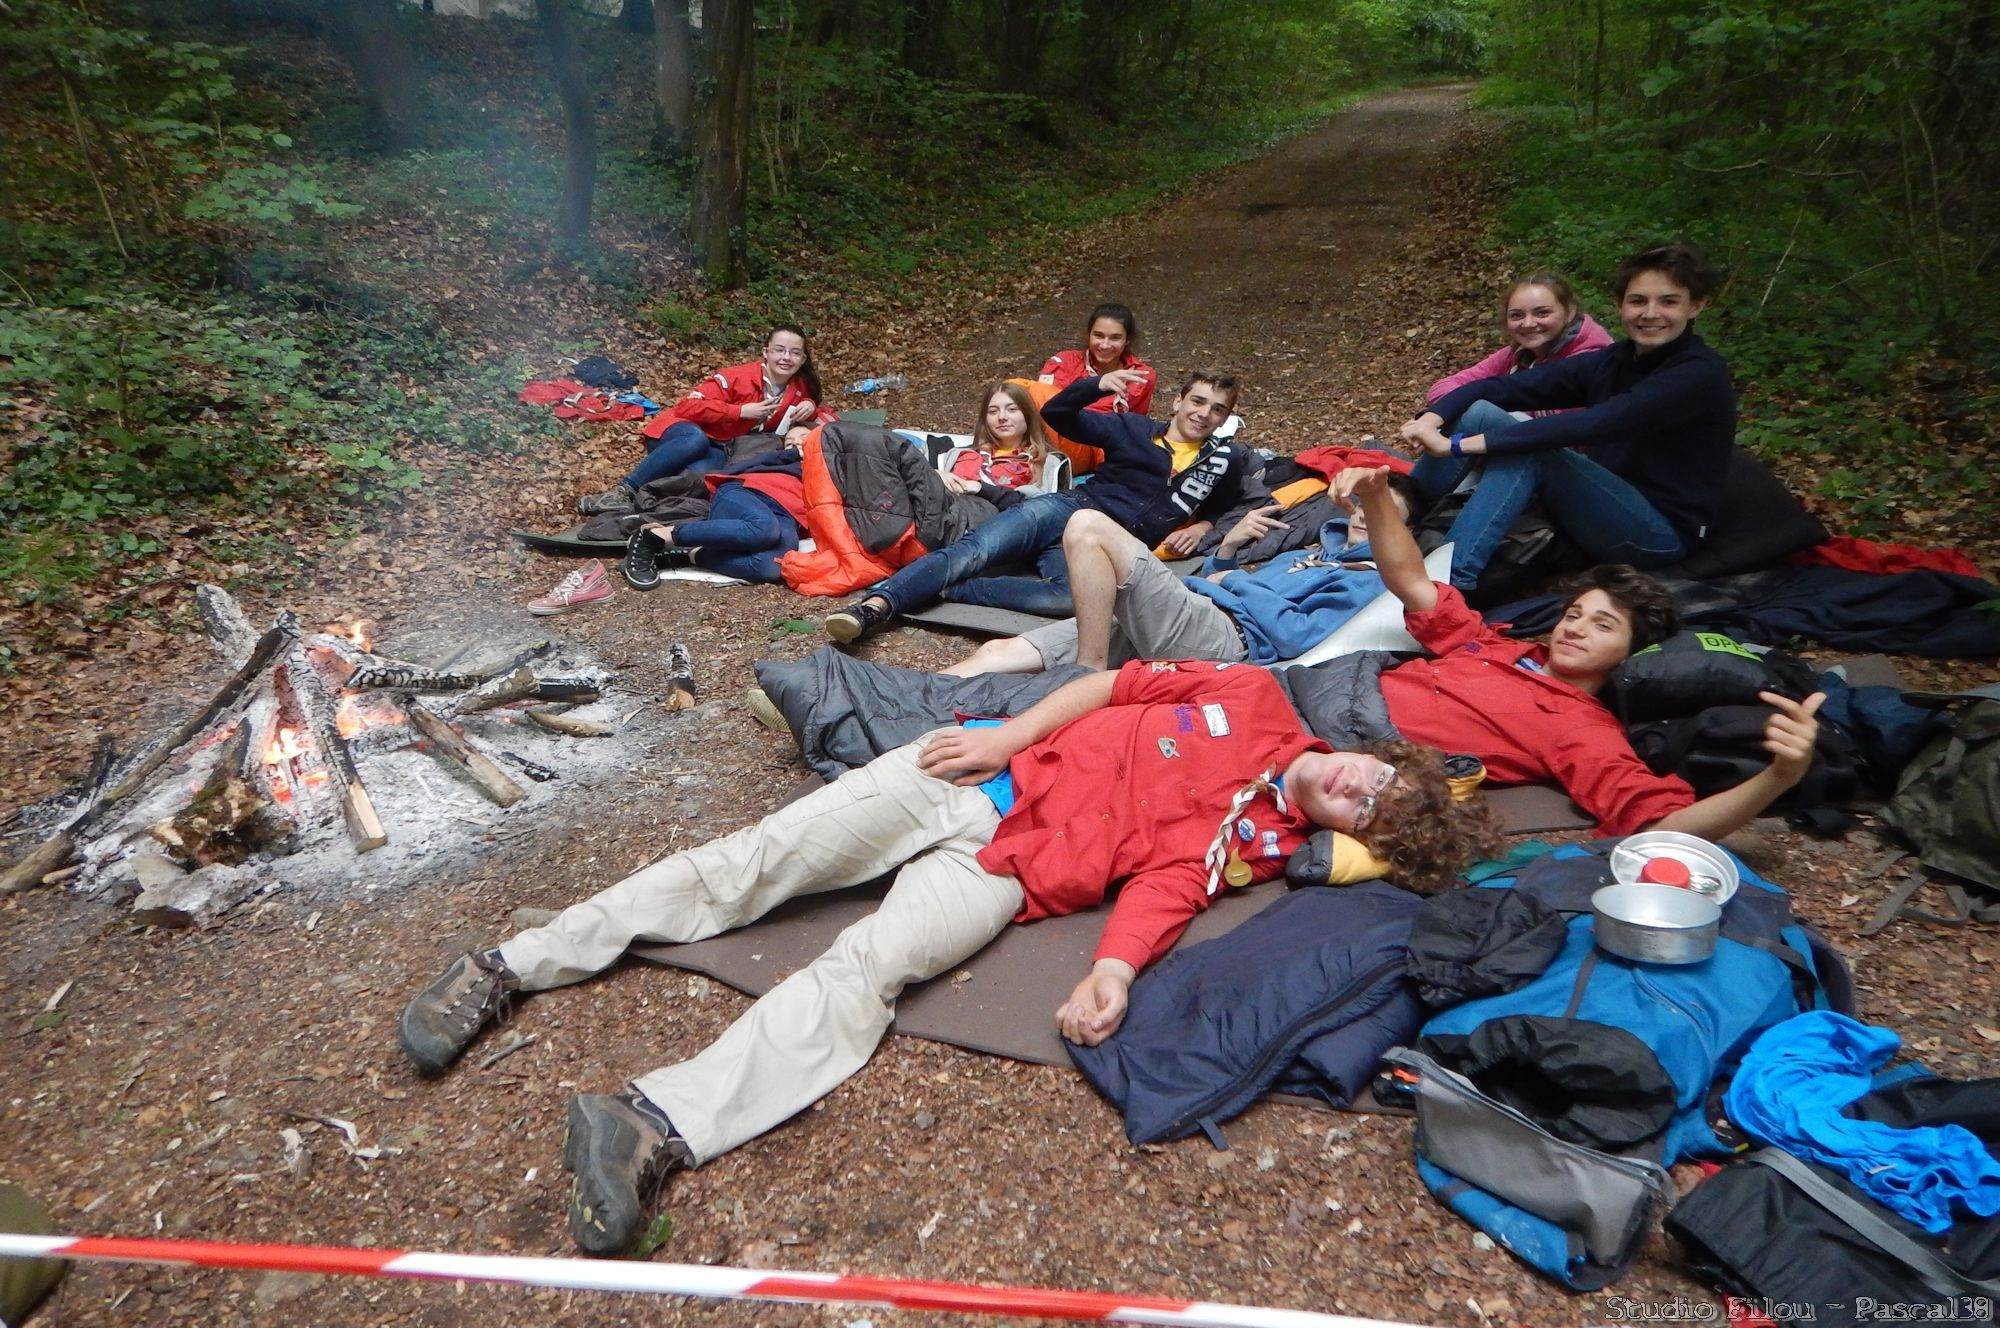 21%2520Crapauds%25202015%2520Scouts%2520%2528100%2529